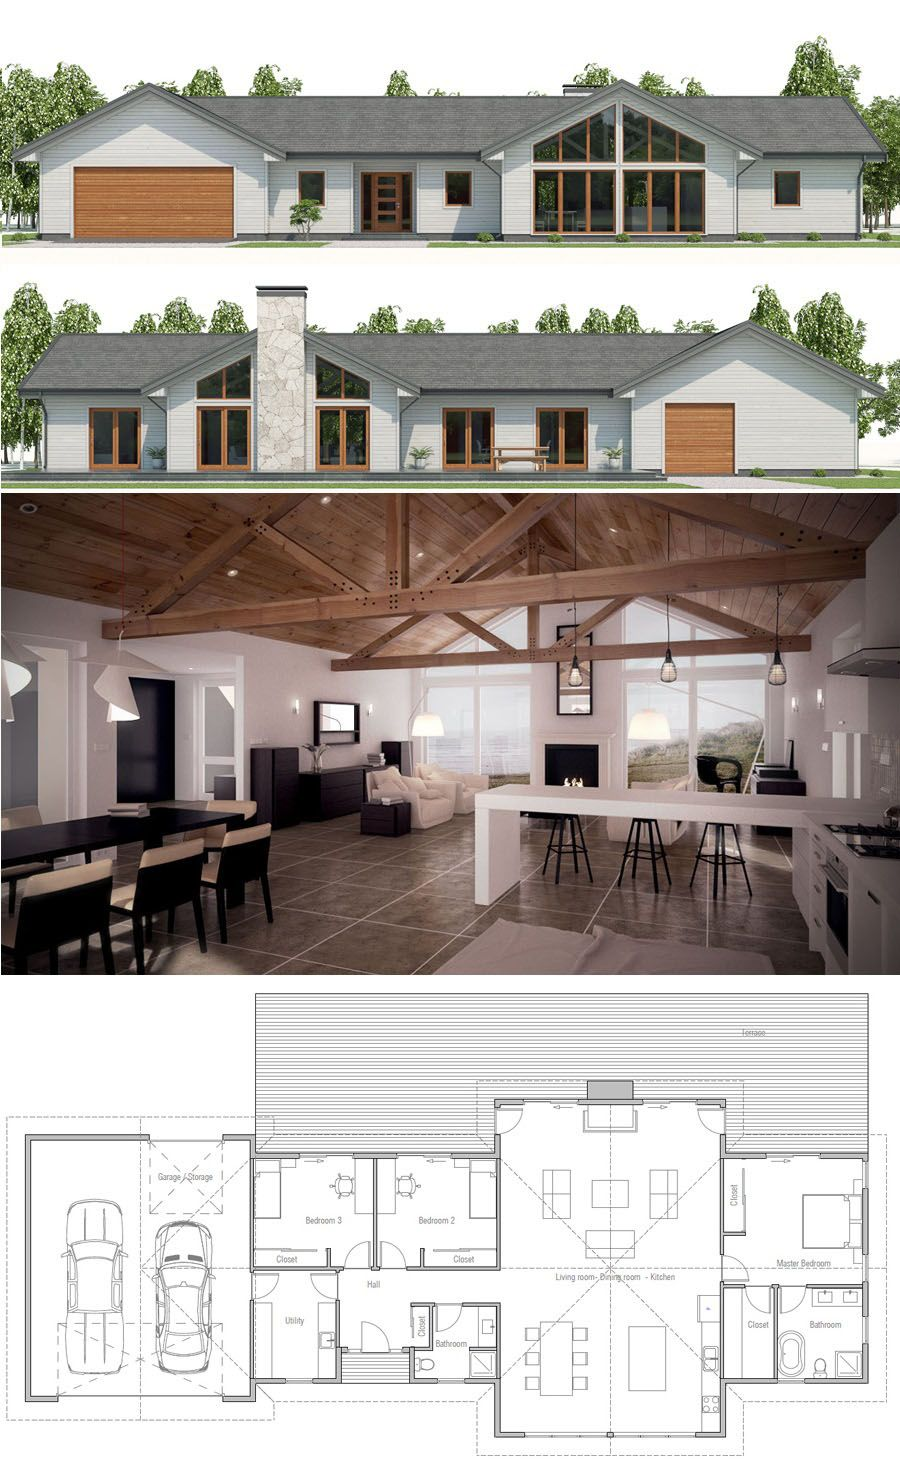 Modern farmhouse plan eliminate the extra rooms between the garage and living space